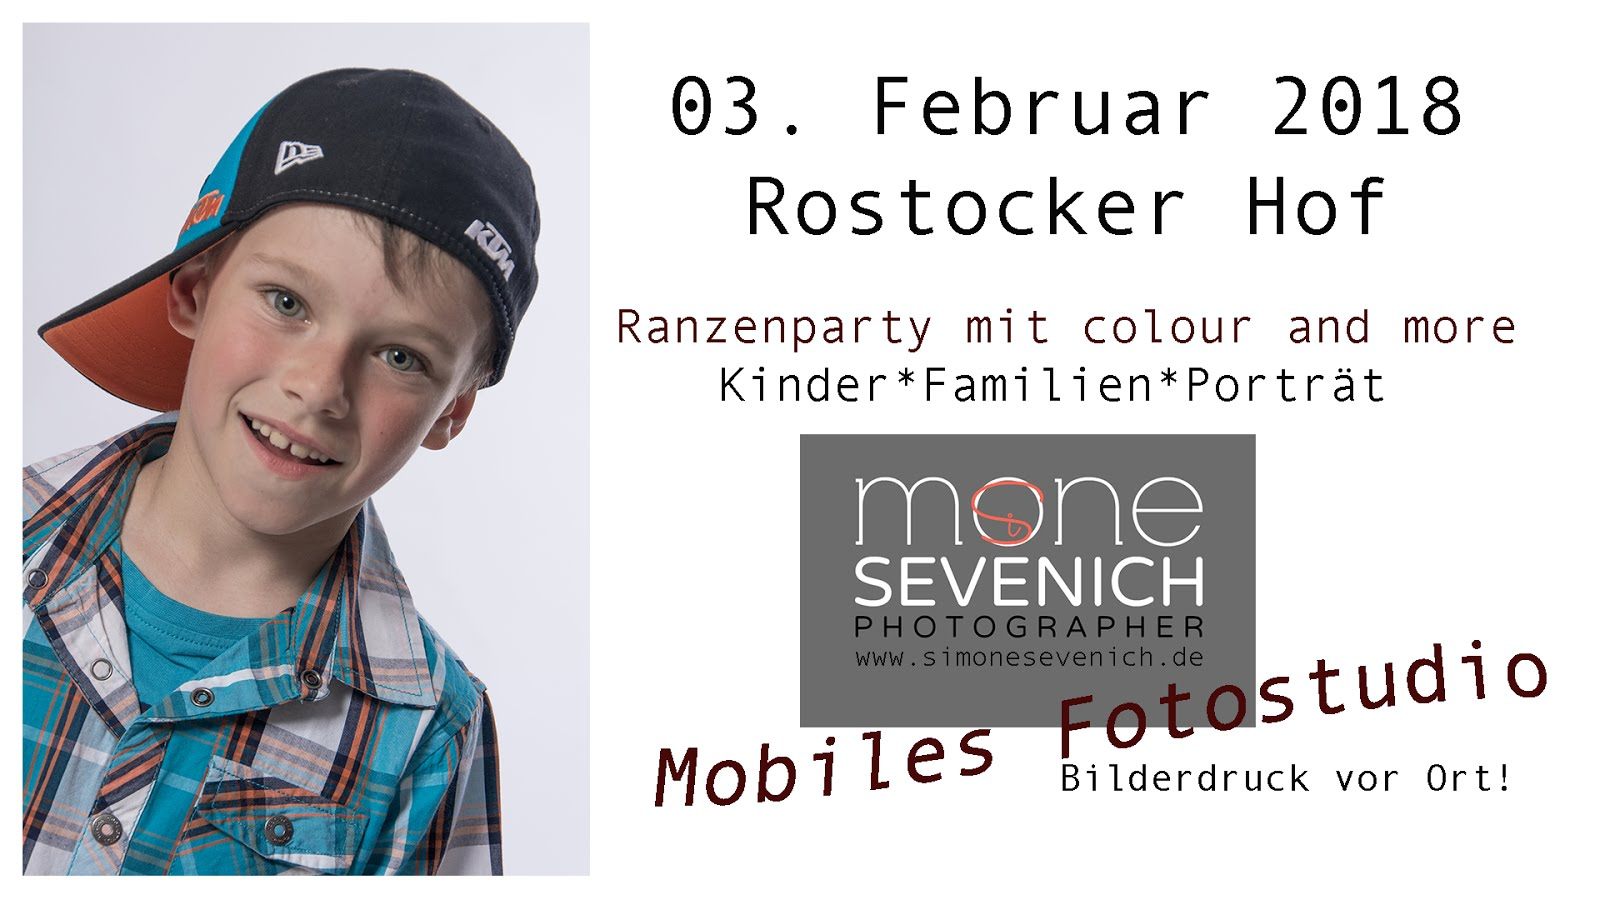 Mobiles Fotostudio Rostock